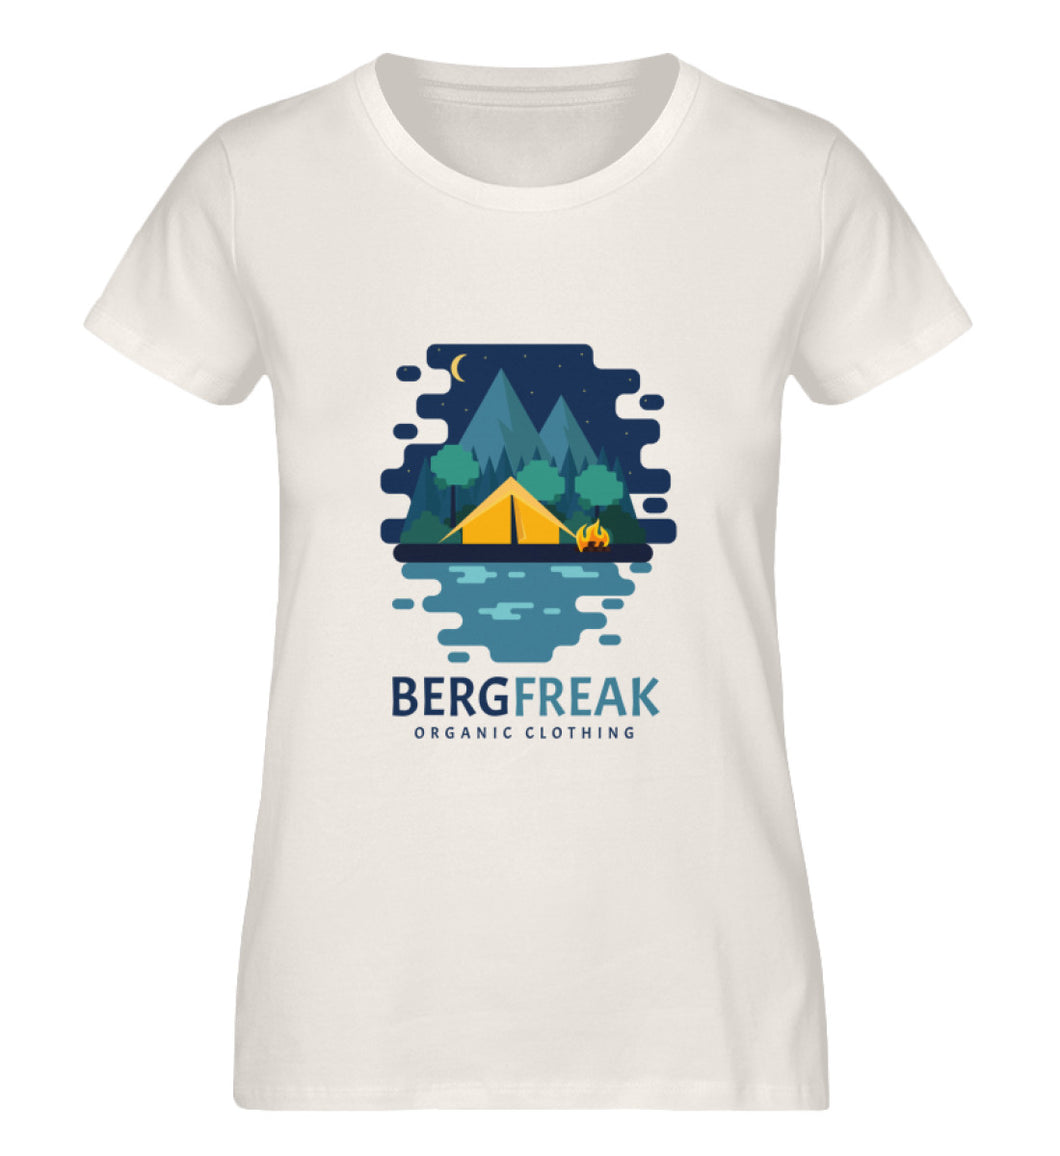 Sternenhimmel - Bergfreak Organic Clothing